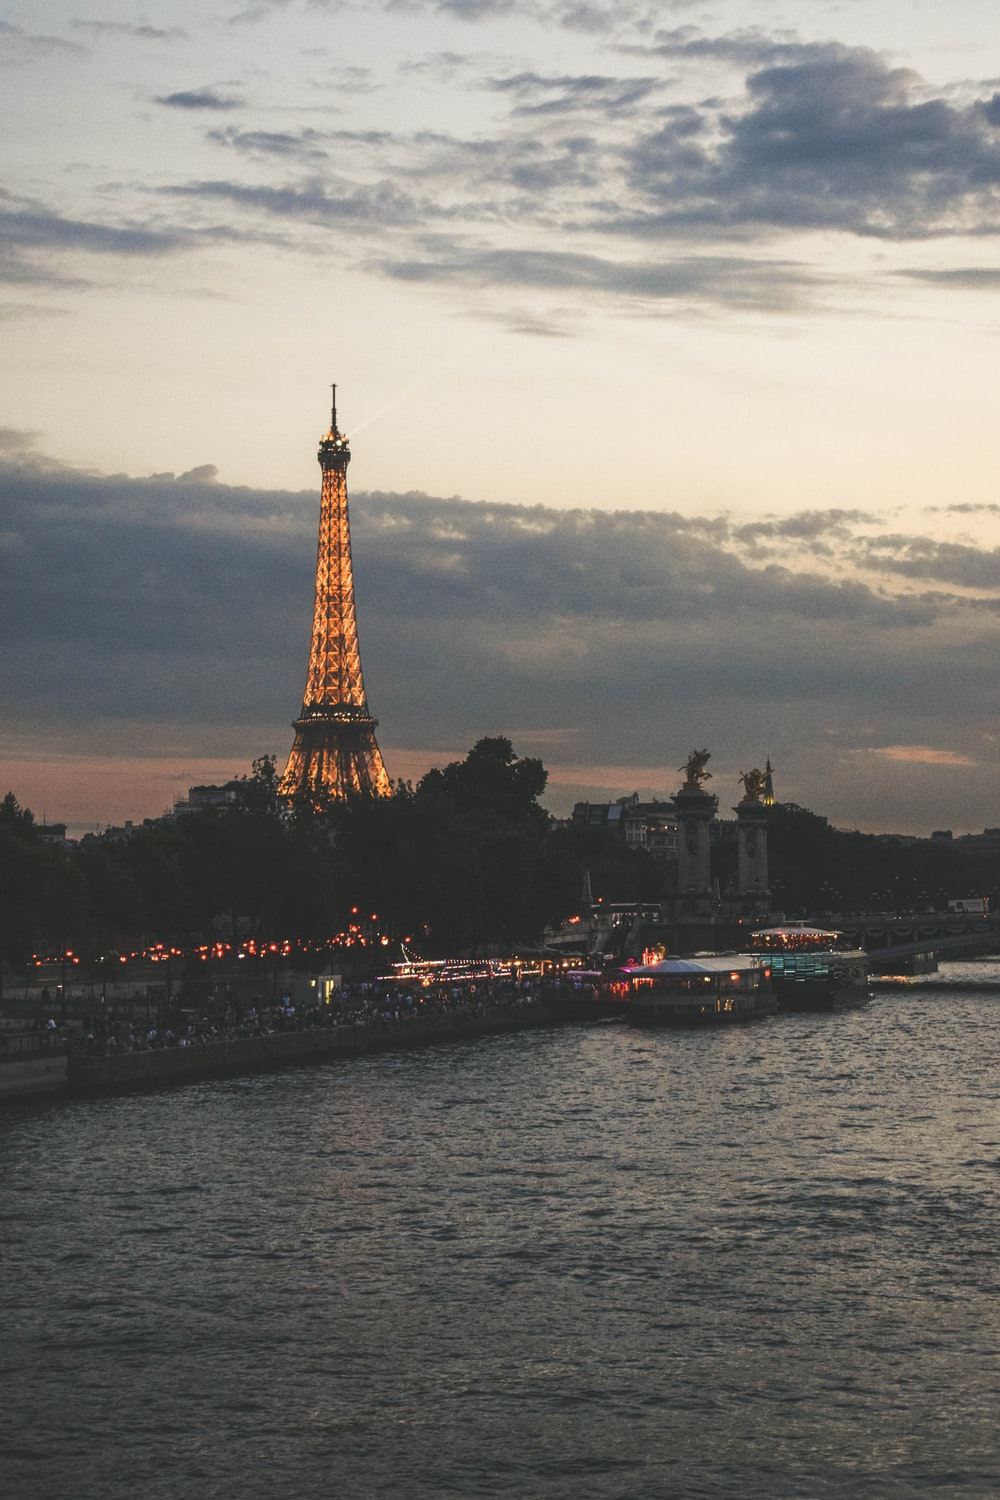 eiffel tower near body of water during daytime